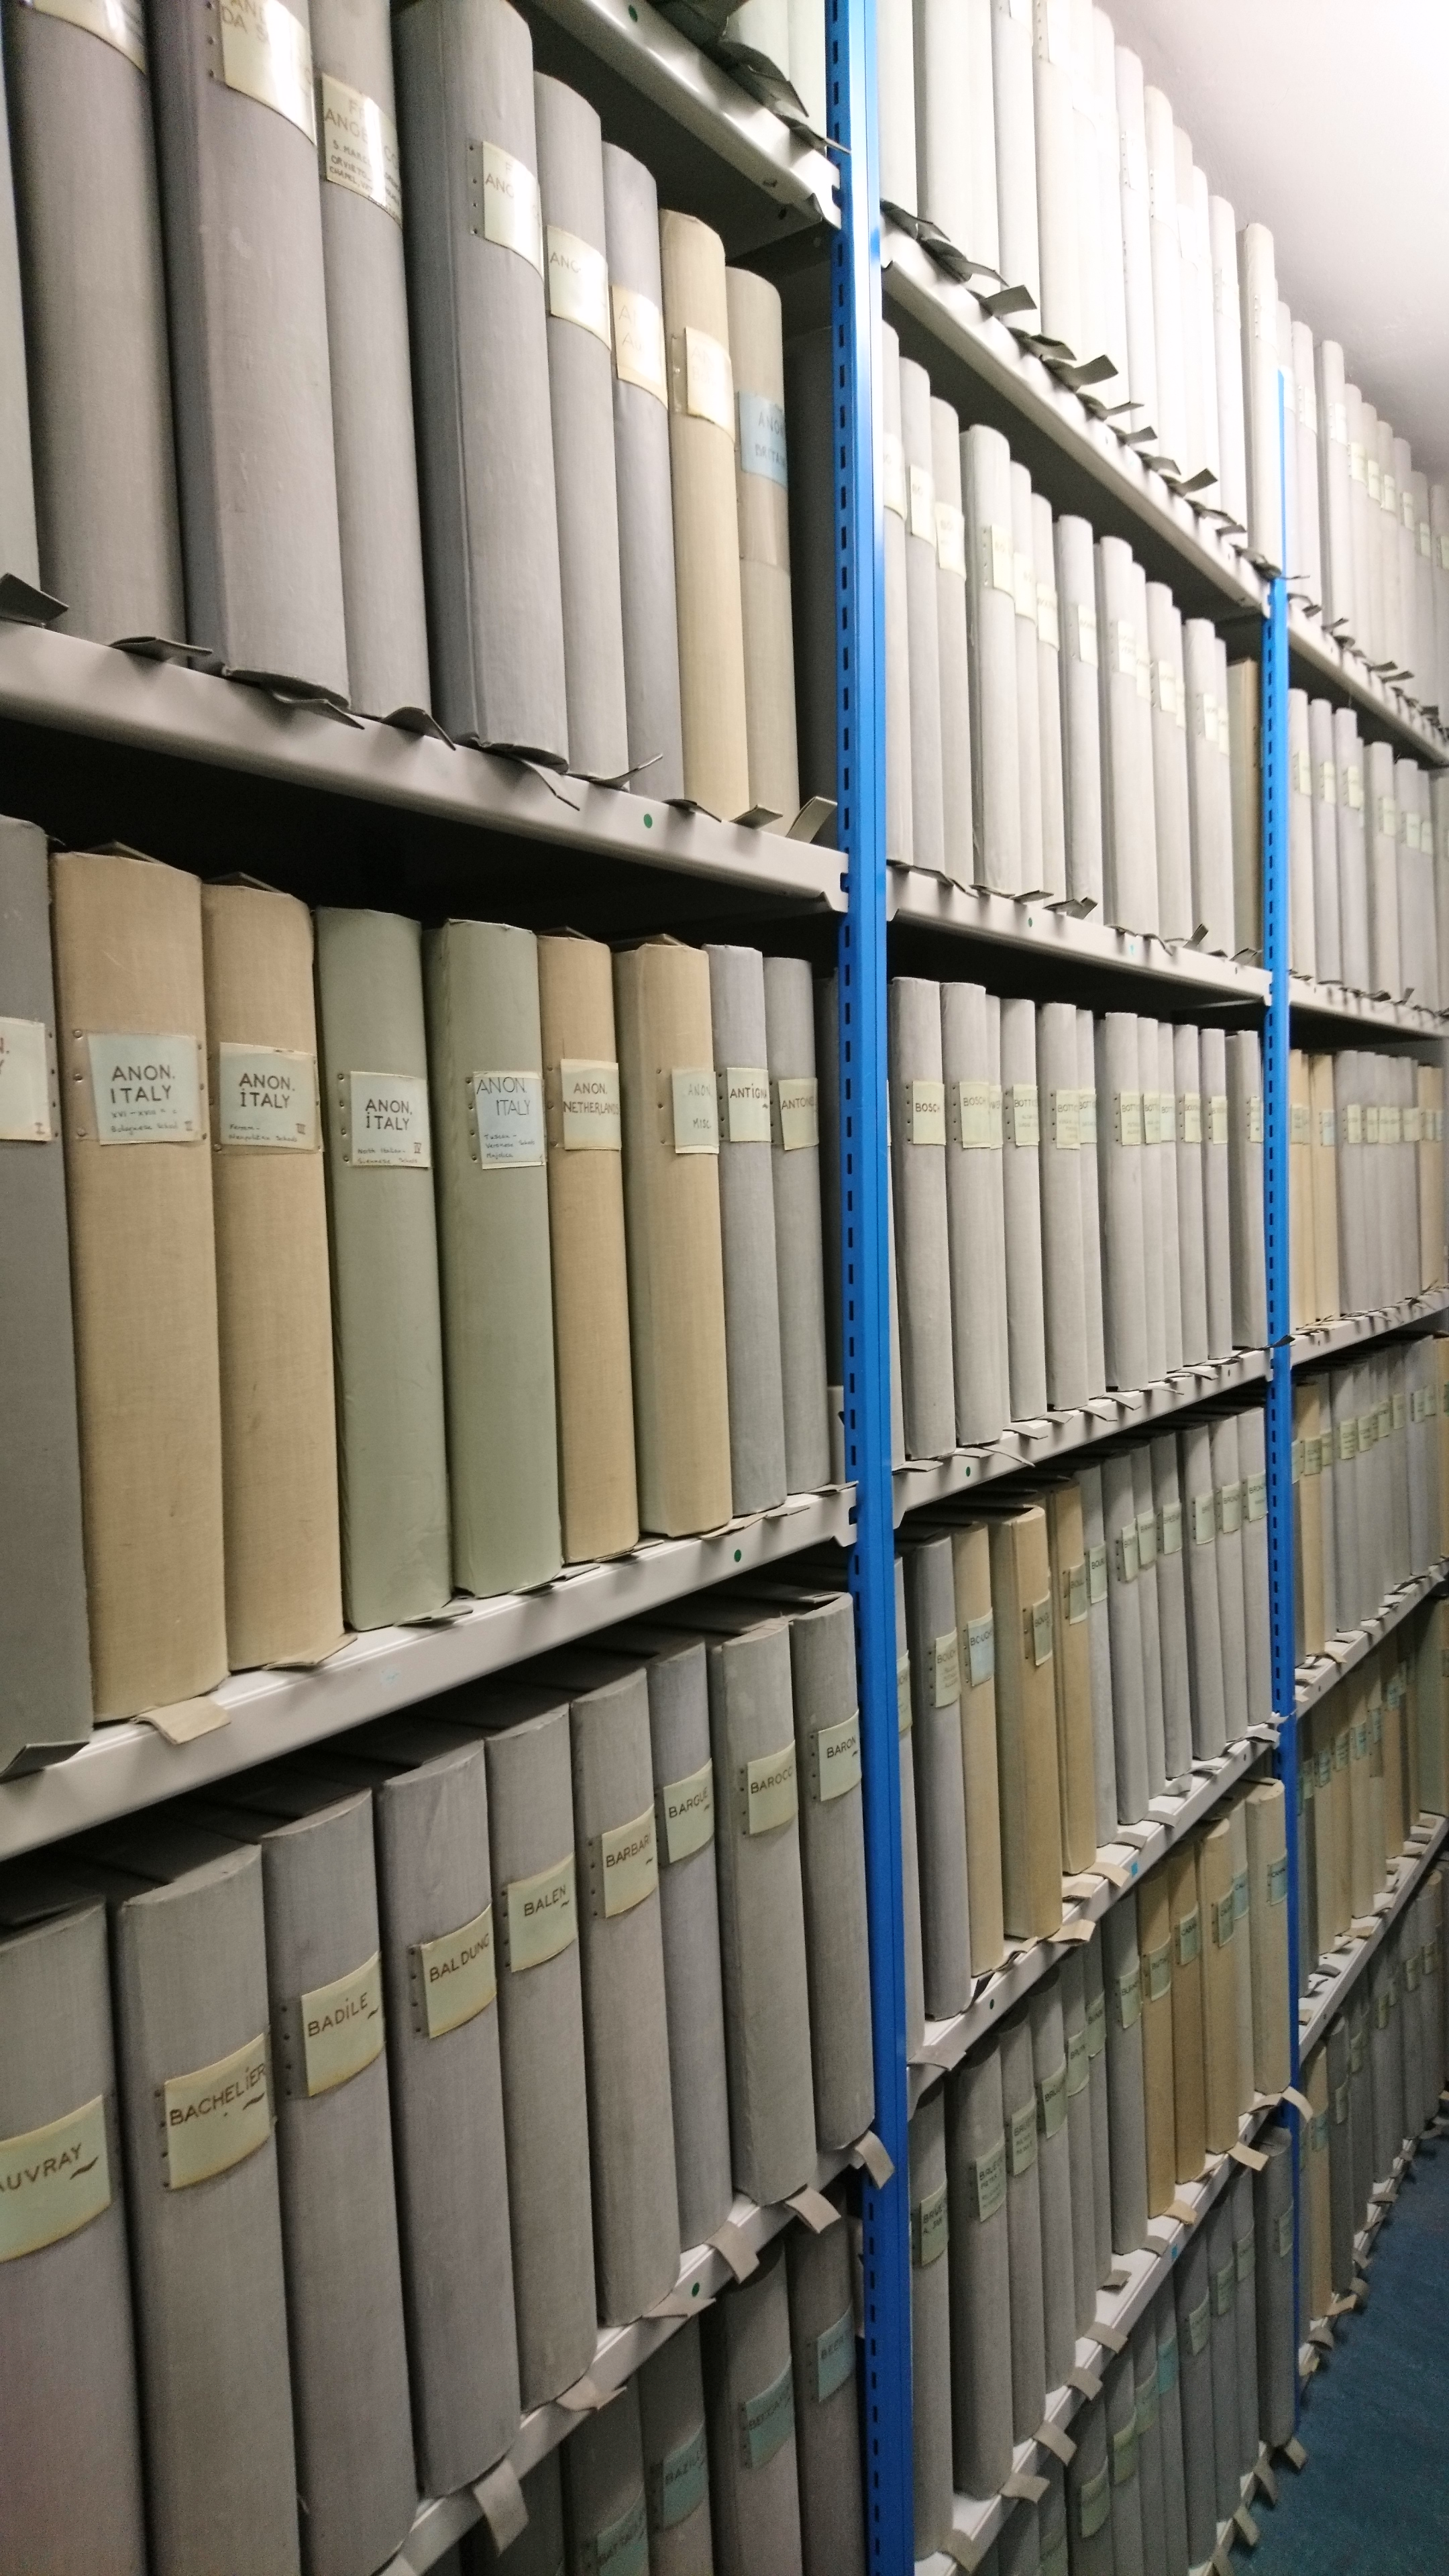 Shelves of archival boxes at the Visual Resources Centre